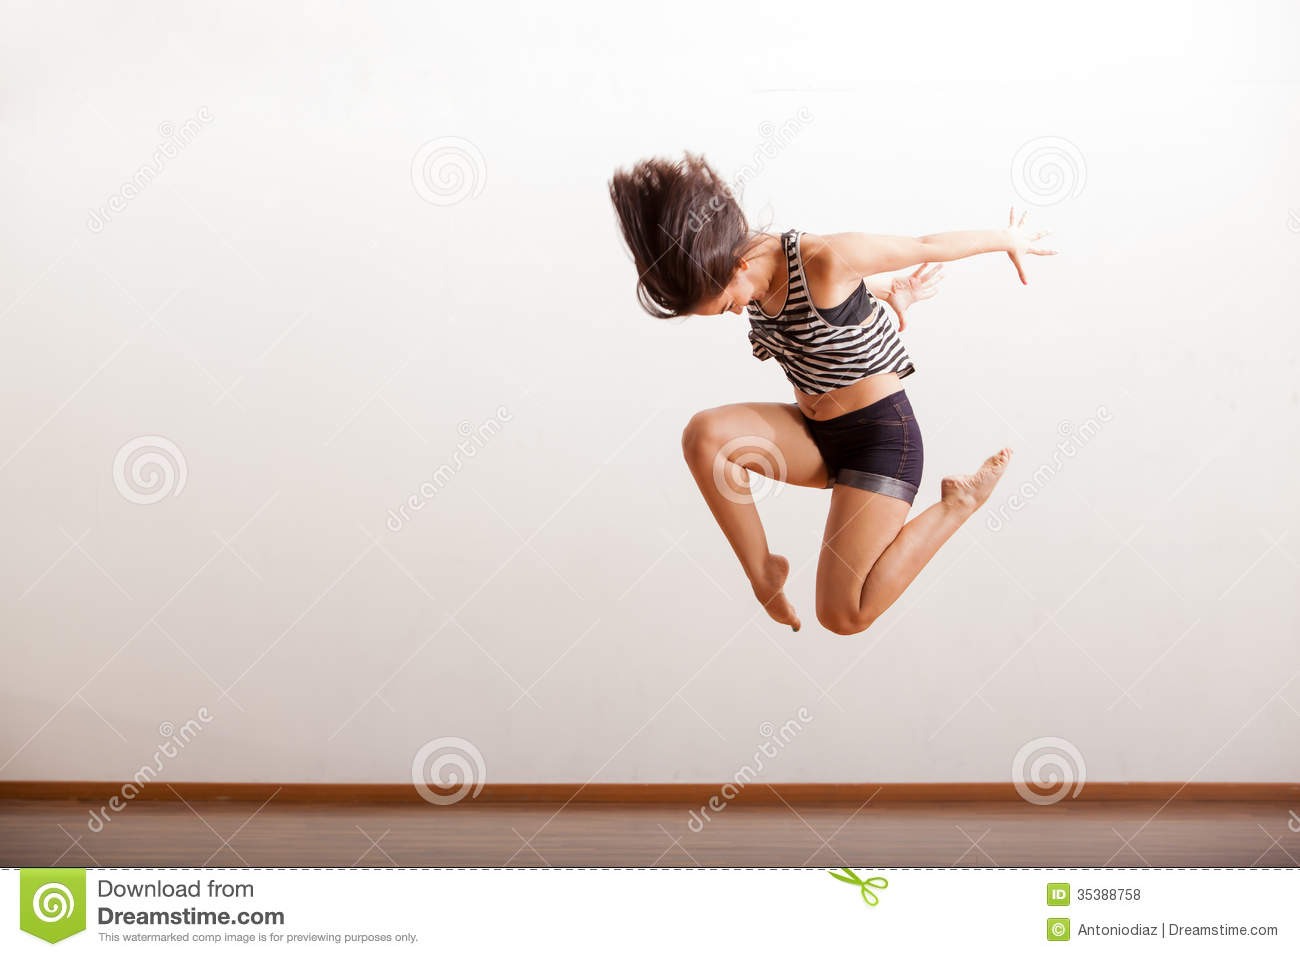 Jazz Dancer Performing Jump Stock Image Focused Rehearsal